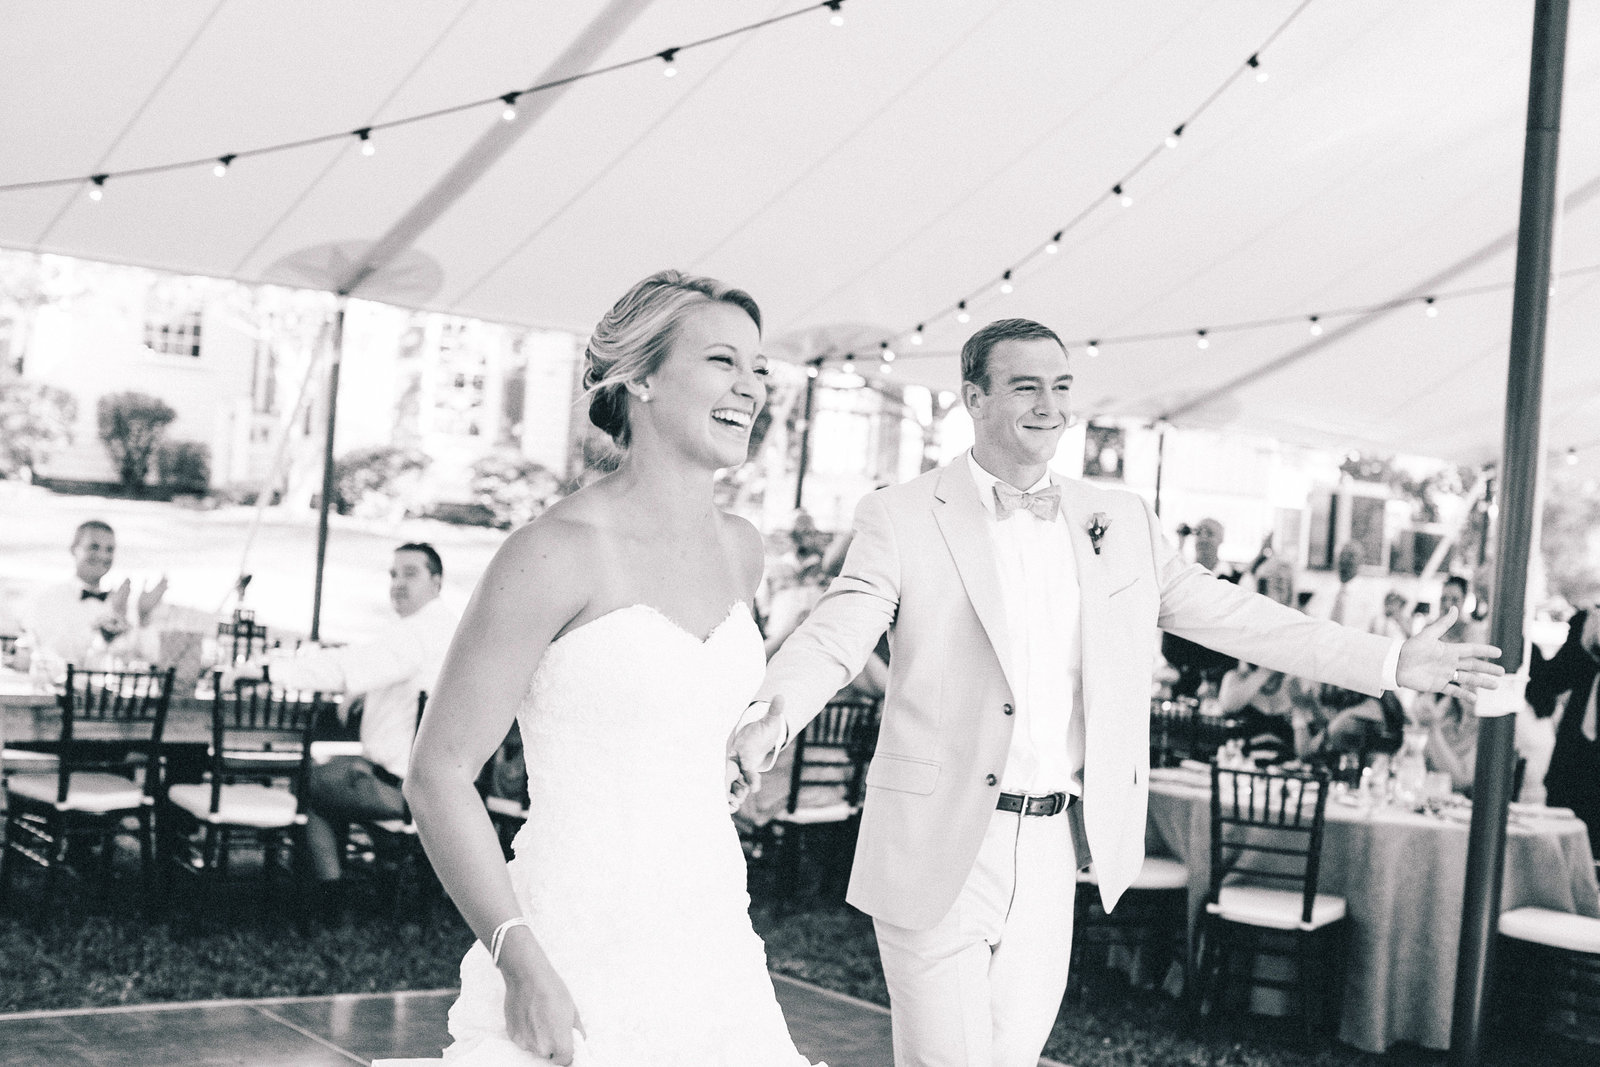 67Devin_Ben_AstridPhotography425Devin_Ben_WeddingIMG_0308